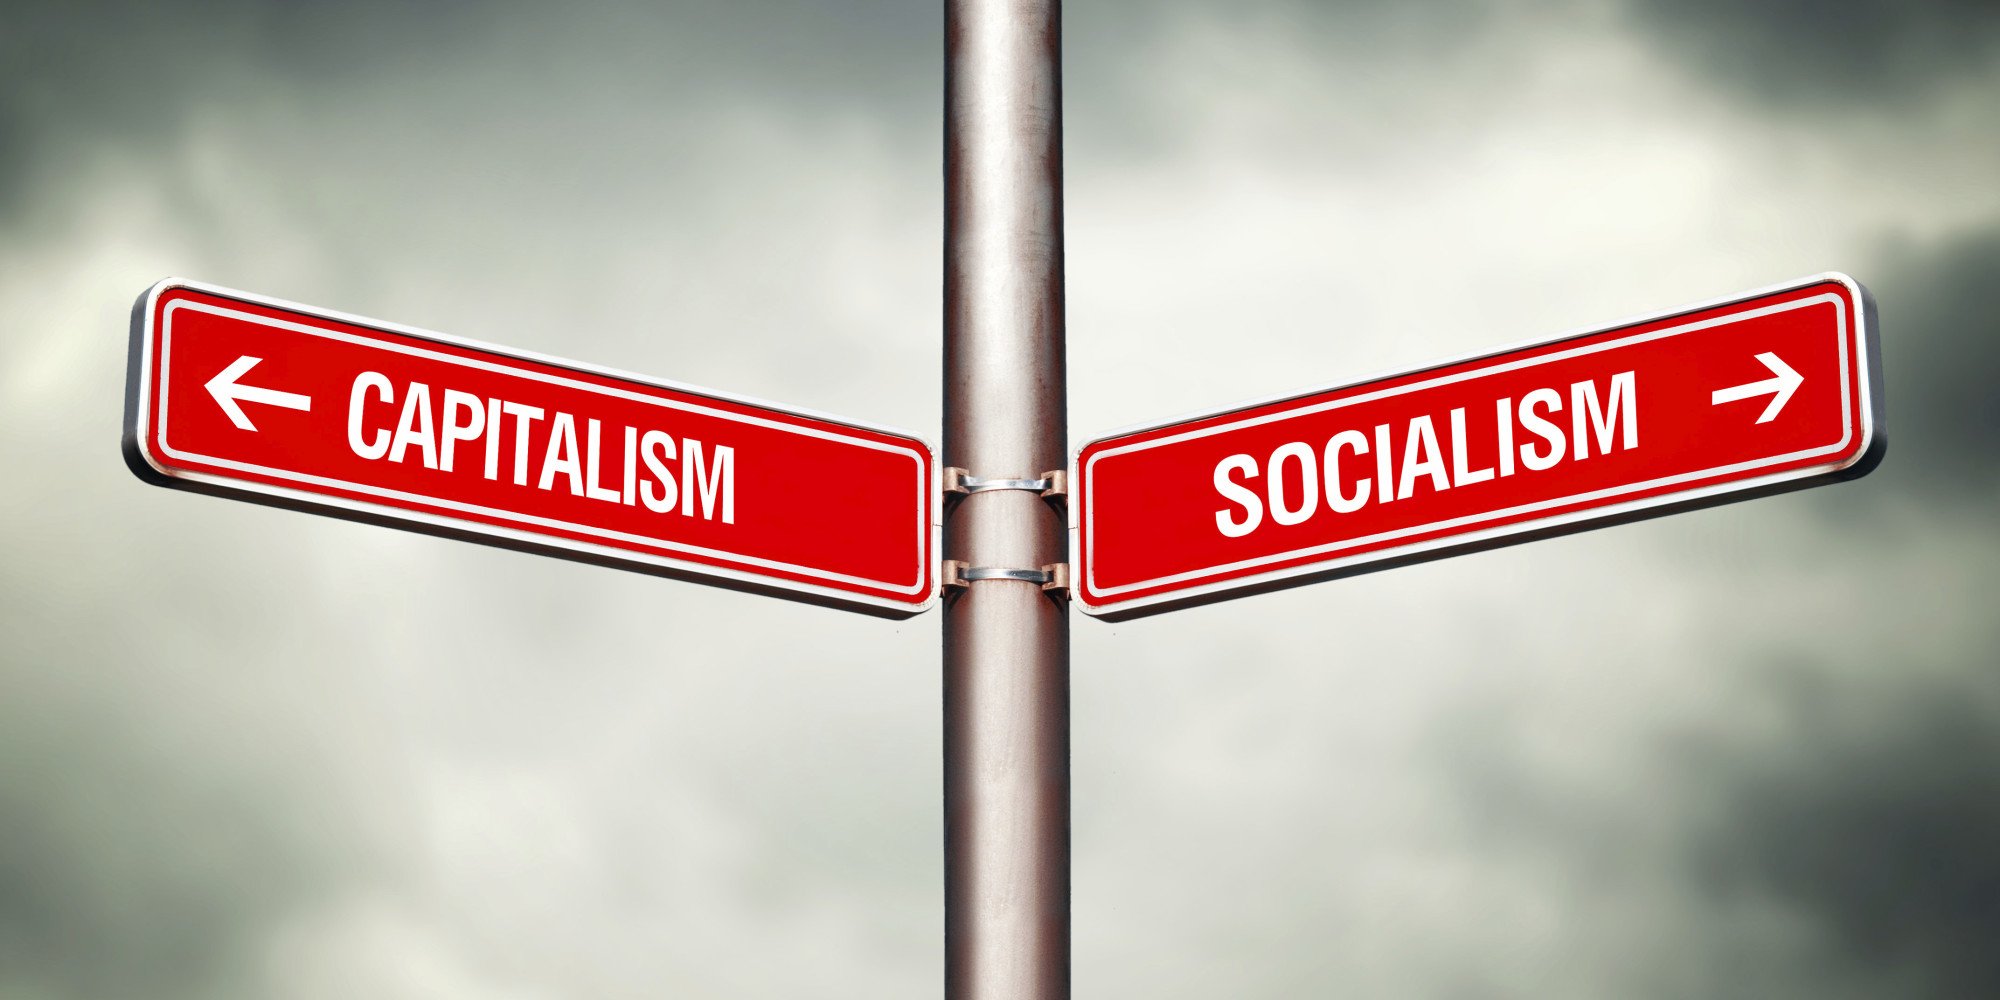 capitalism and socialism Eleven important differences between capitalism and socialism are disclosed here in tabular form the first difference is the basis of capitalism is the principal of individual rights, whereas socialism is based on principle of equality.